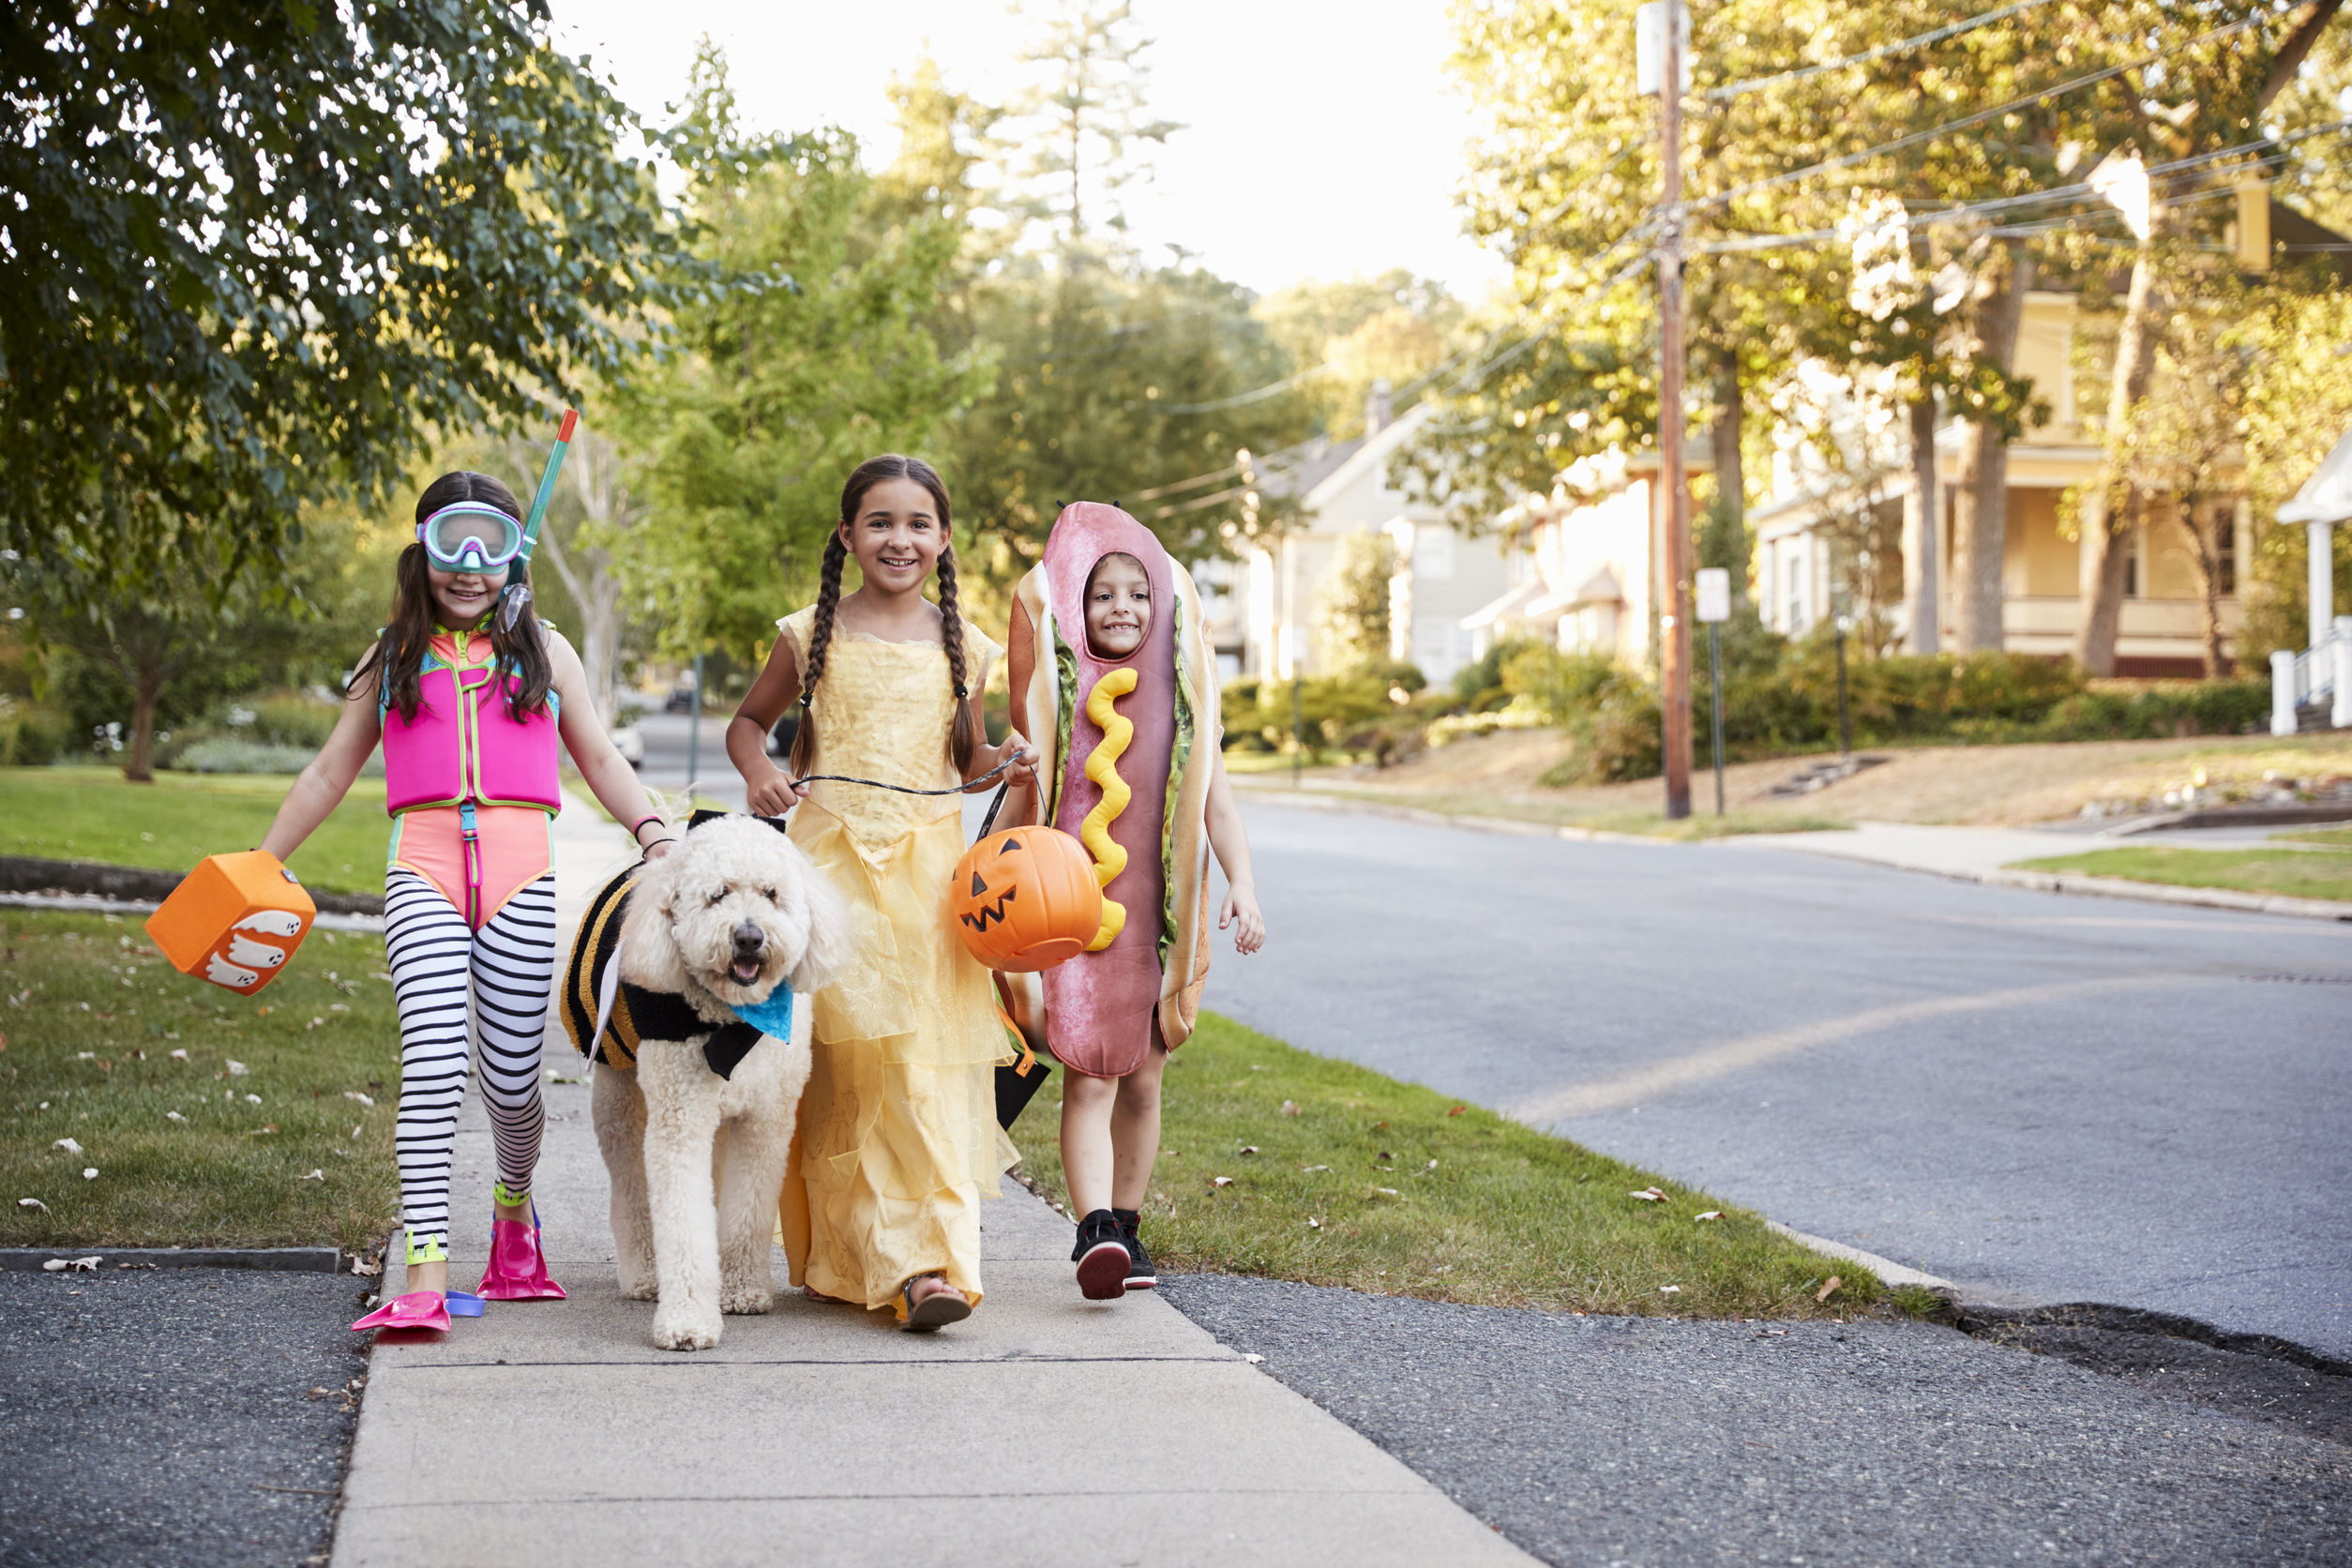 Walking Trick or Treaters